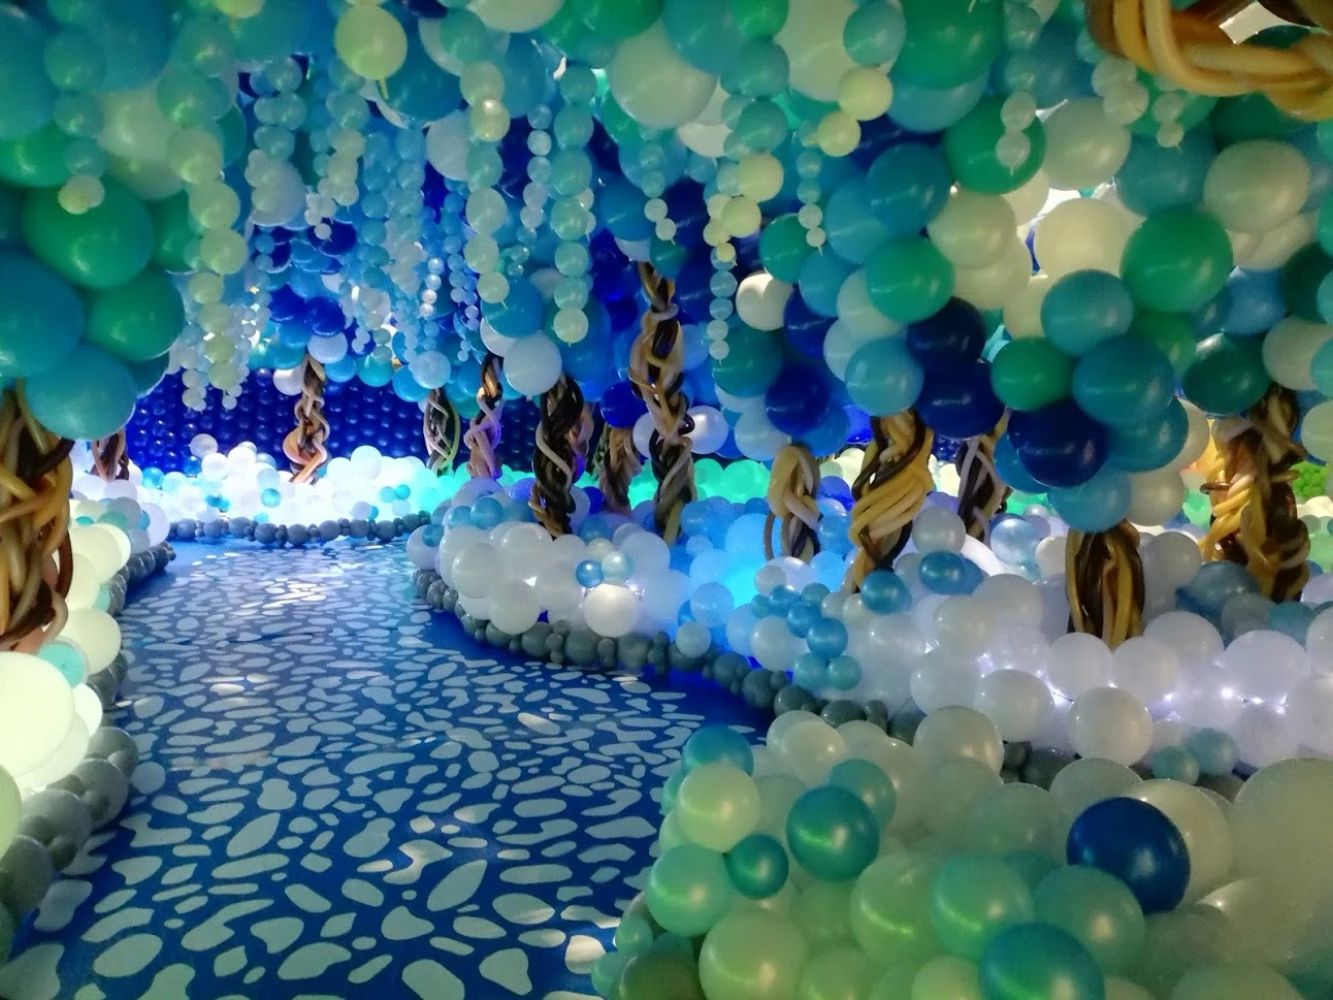 Magical Balloon Forest from the Big Balloon Build created using Air-filled Natural Latex Balloons